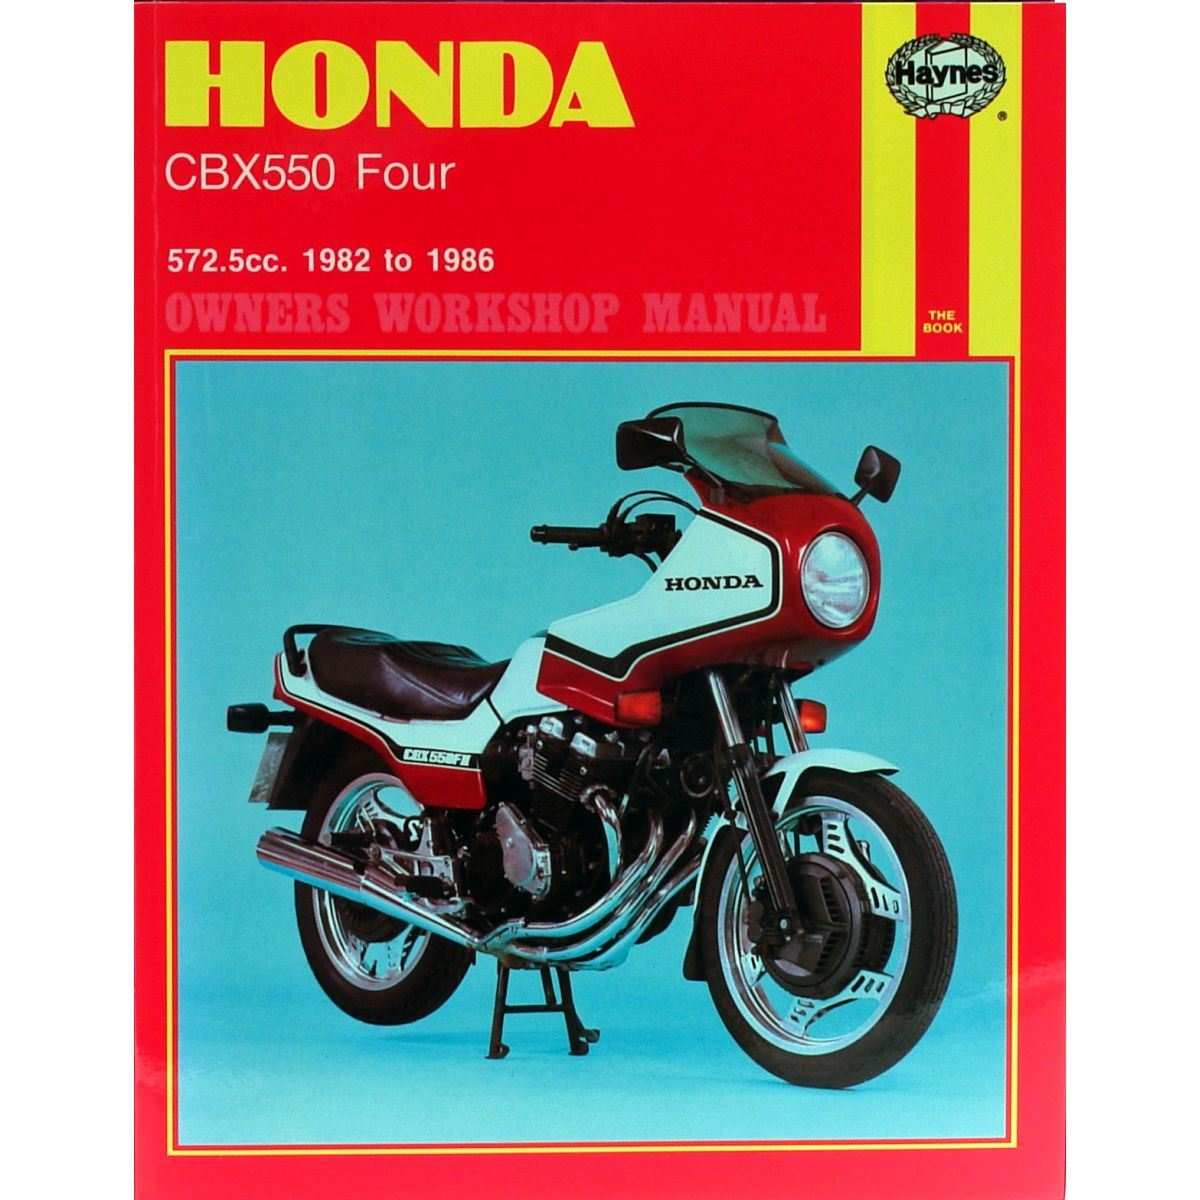 honda cbx 550 manual daily instruction manual guides u2022 rh testingwordpress co Honda CBX 1100 6 Cylinder Honda CBX 500 2014